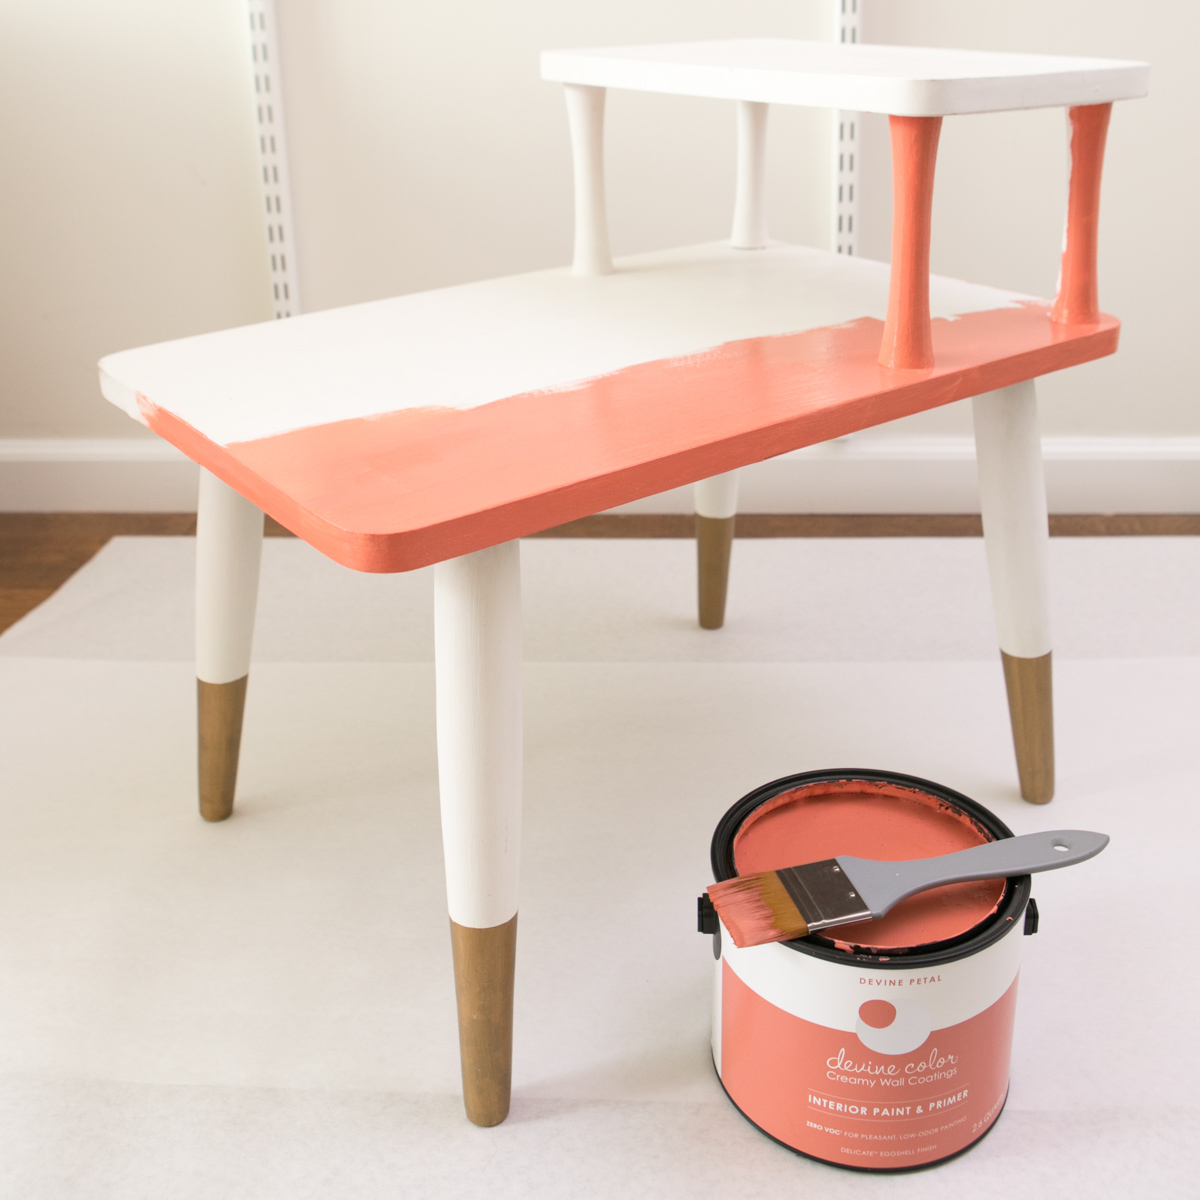 Use Devine Color paint to update the color of furniture like side tables and chairs.